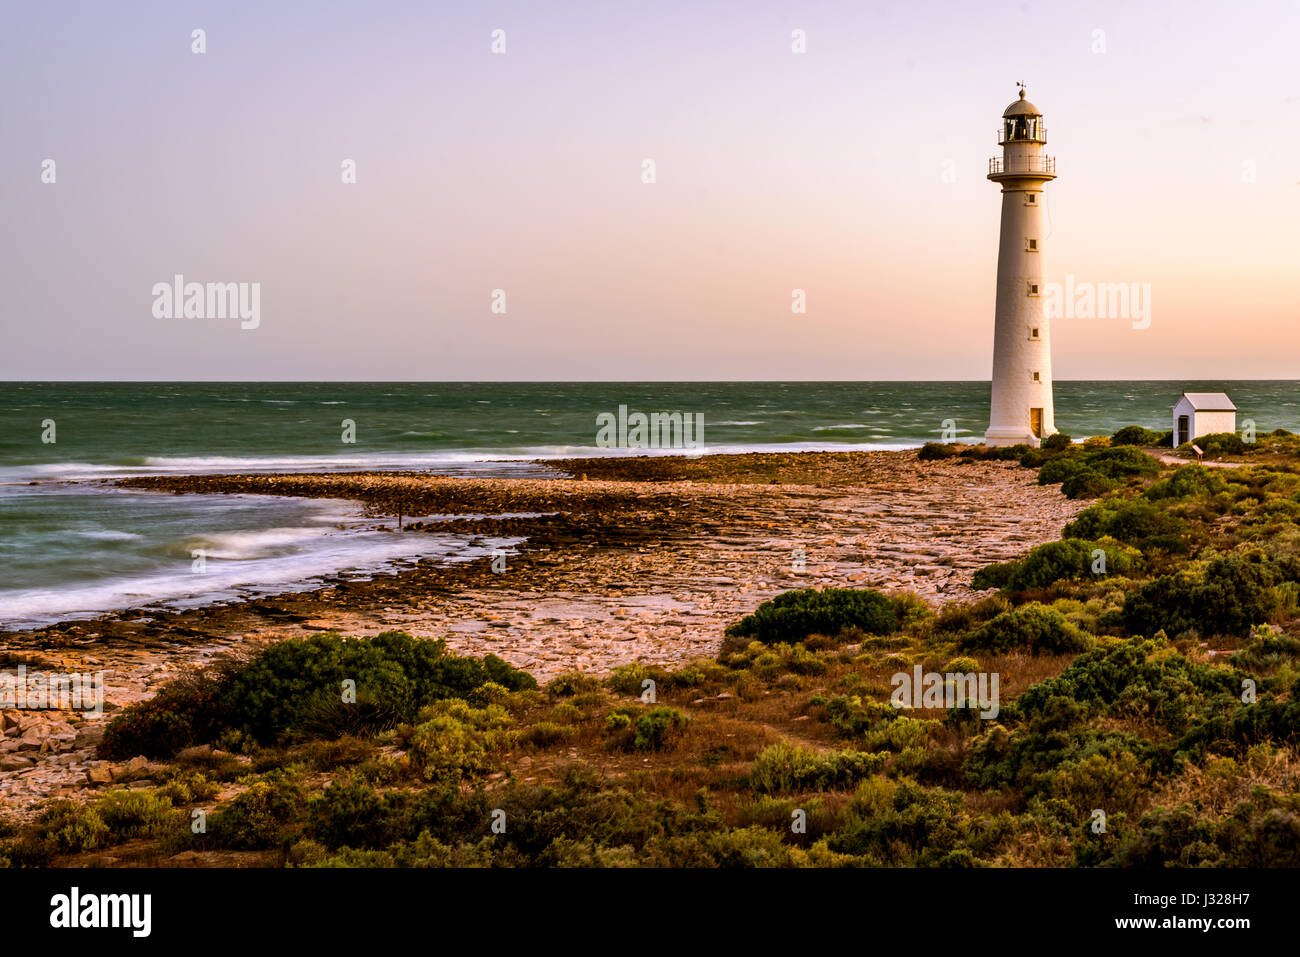 Point Lowly at Eyre Peninsula, South Australia - Stock Image